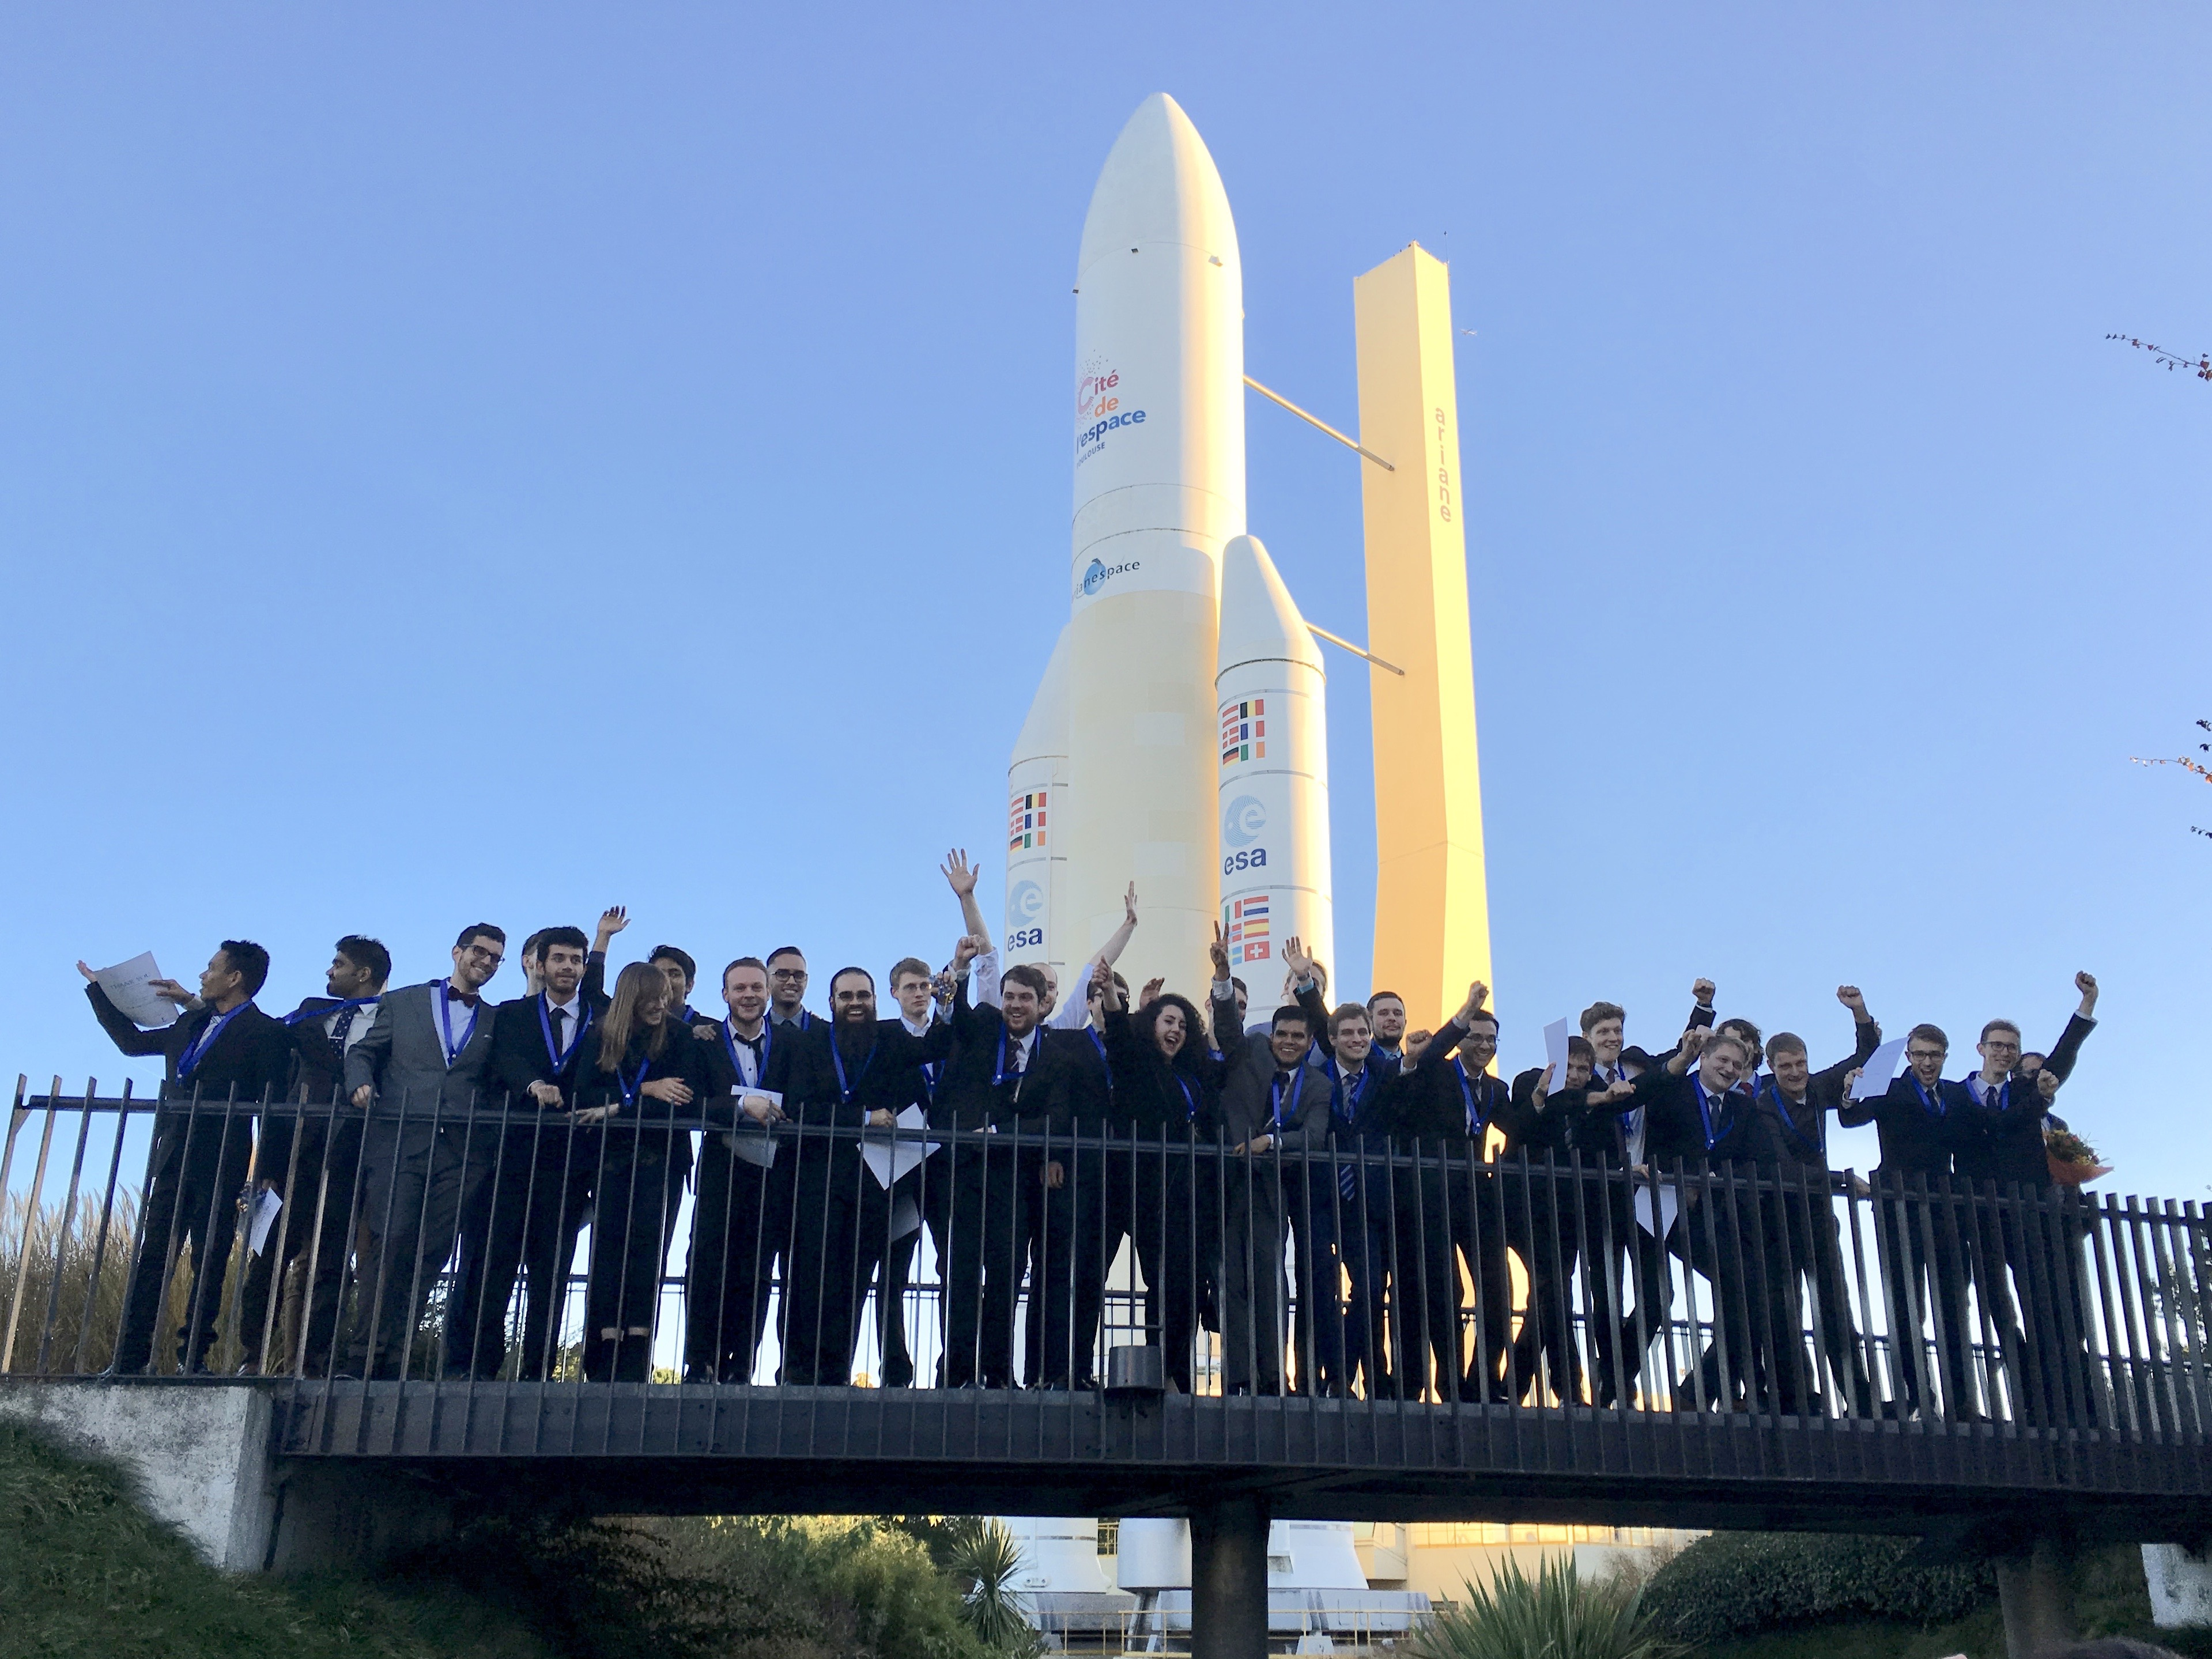 remise des diplomes spacemaster, 28.10.2016